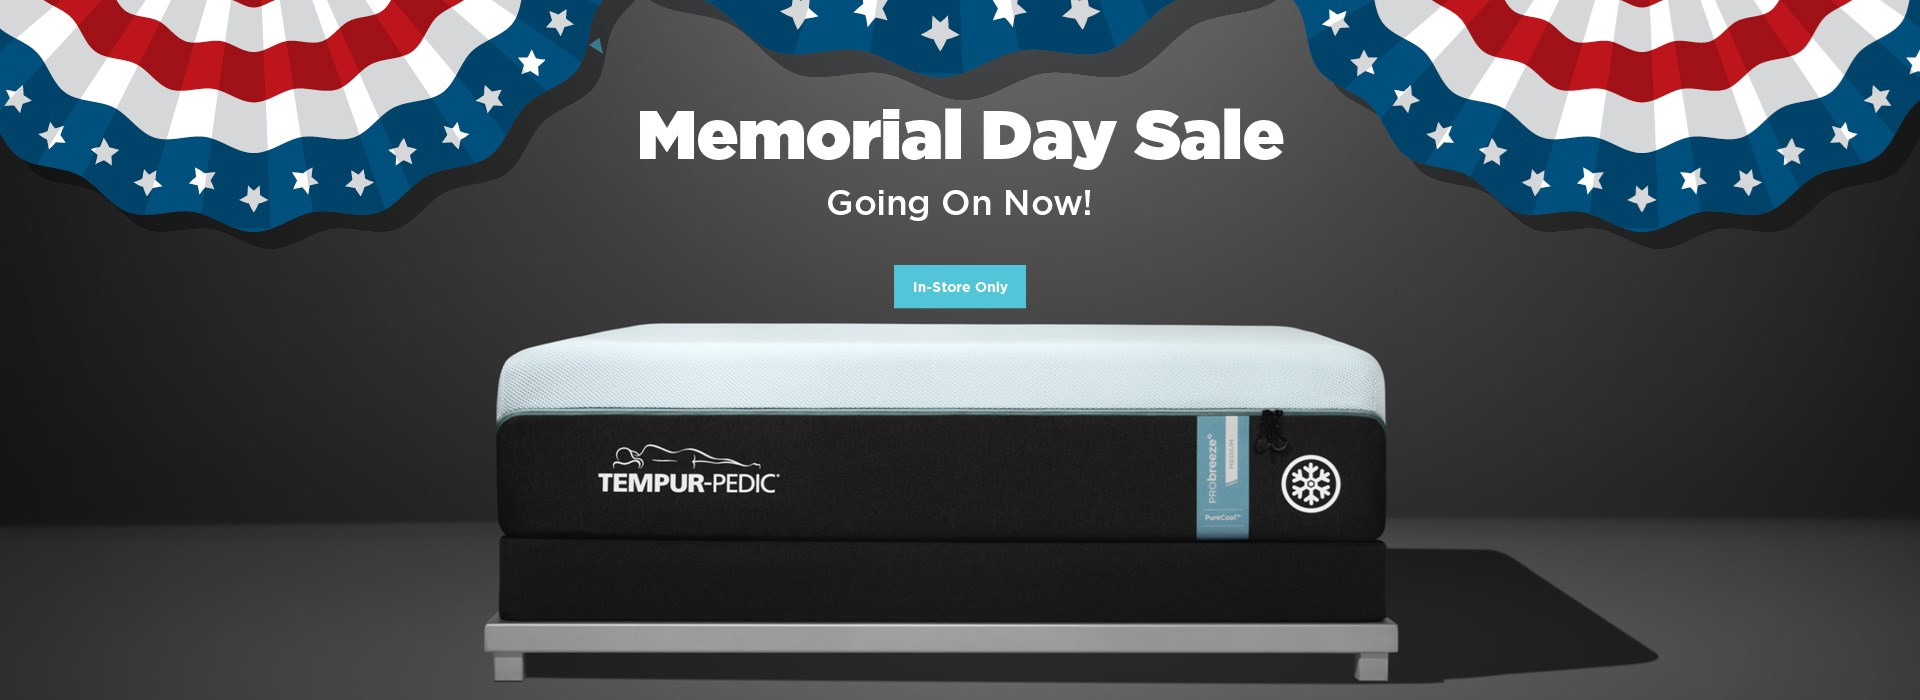 Memorial Day sale in stores only; see store for details.